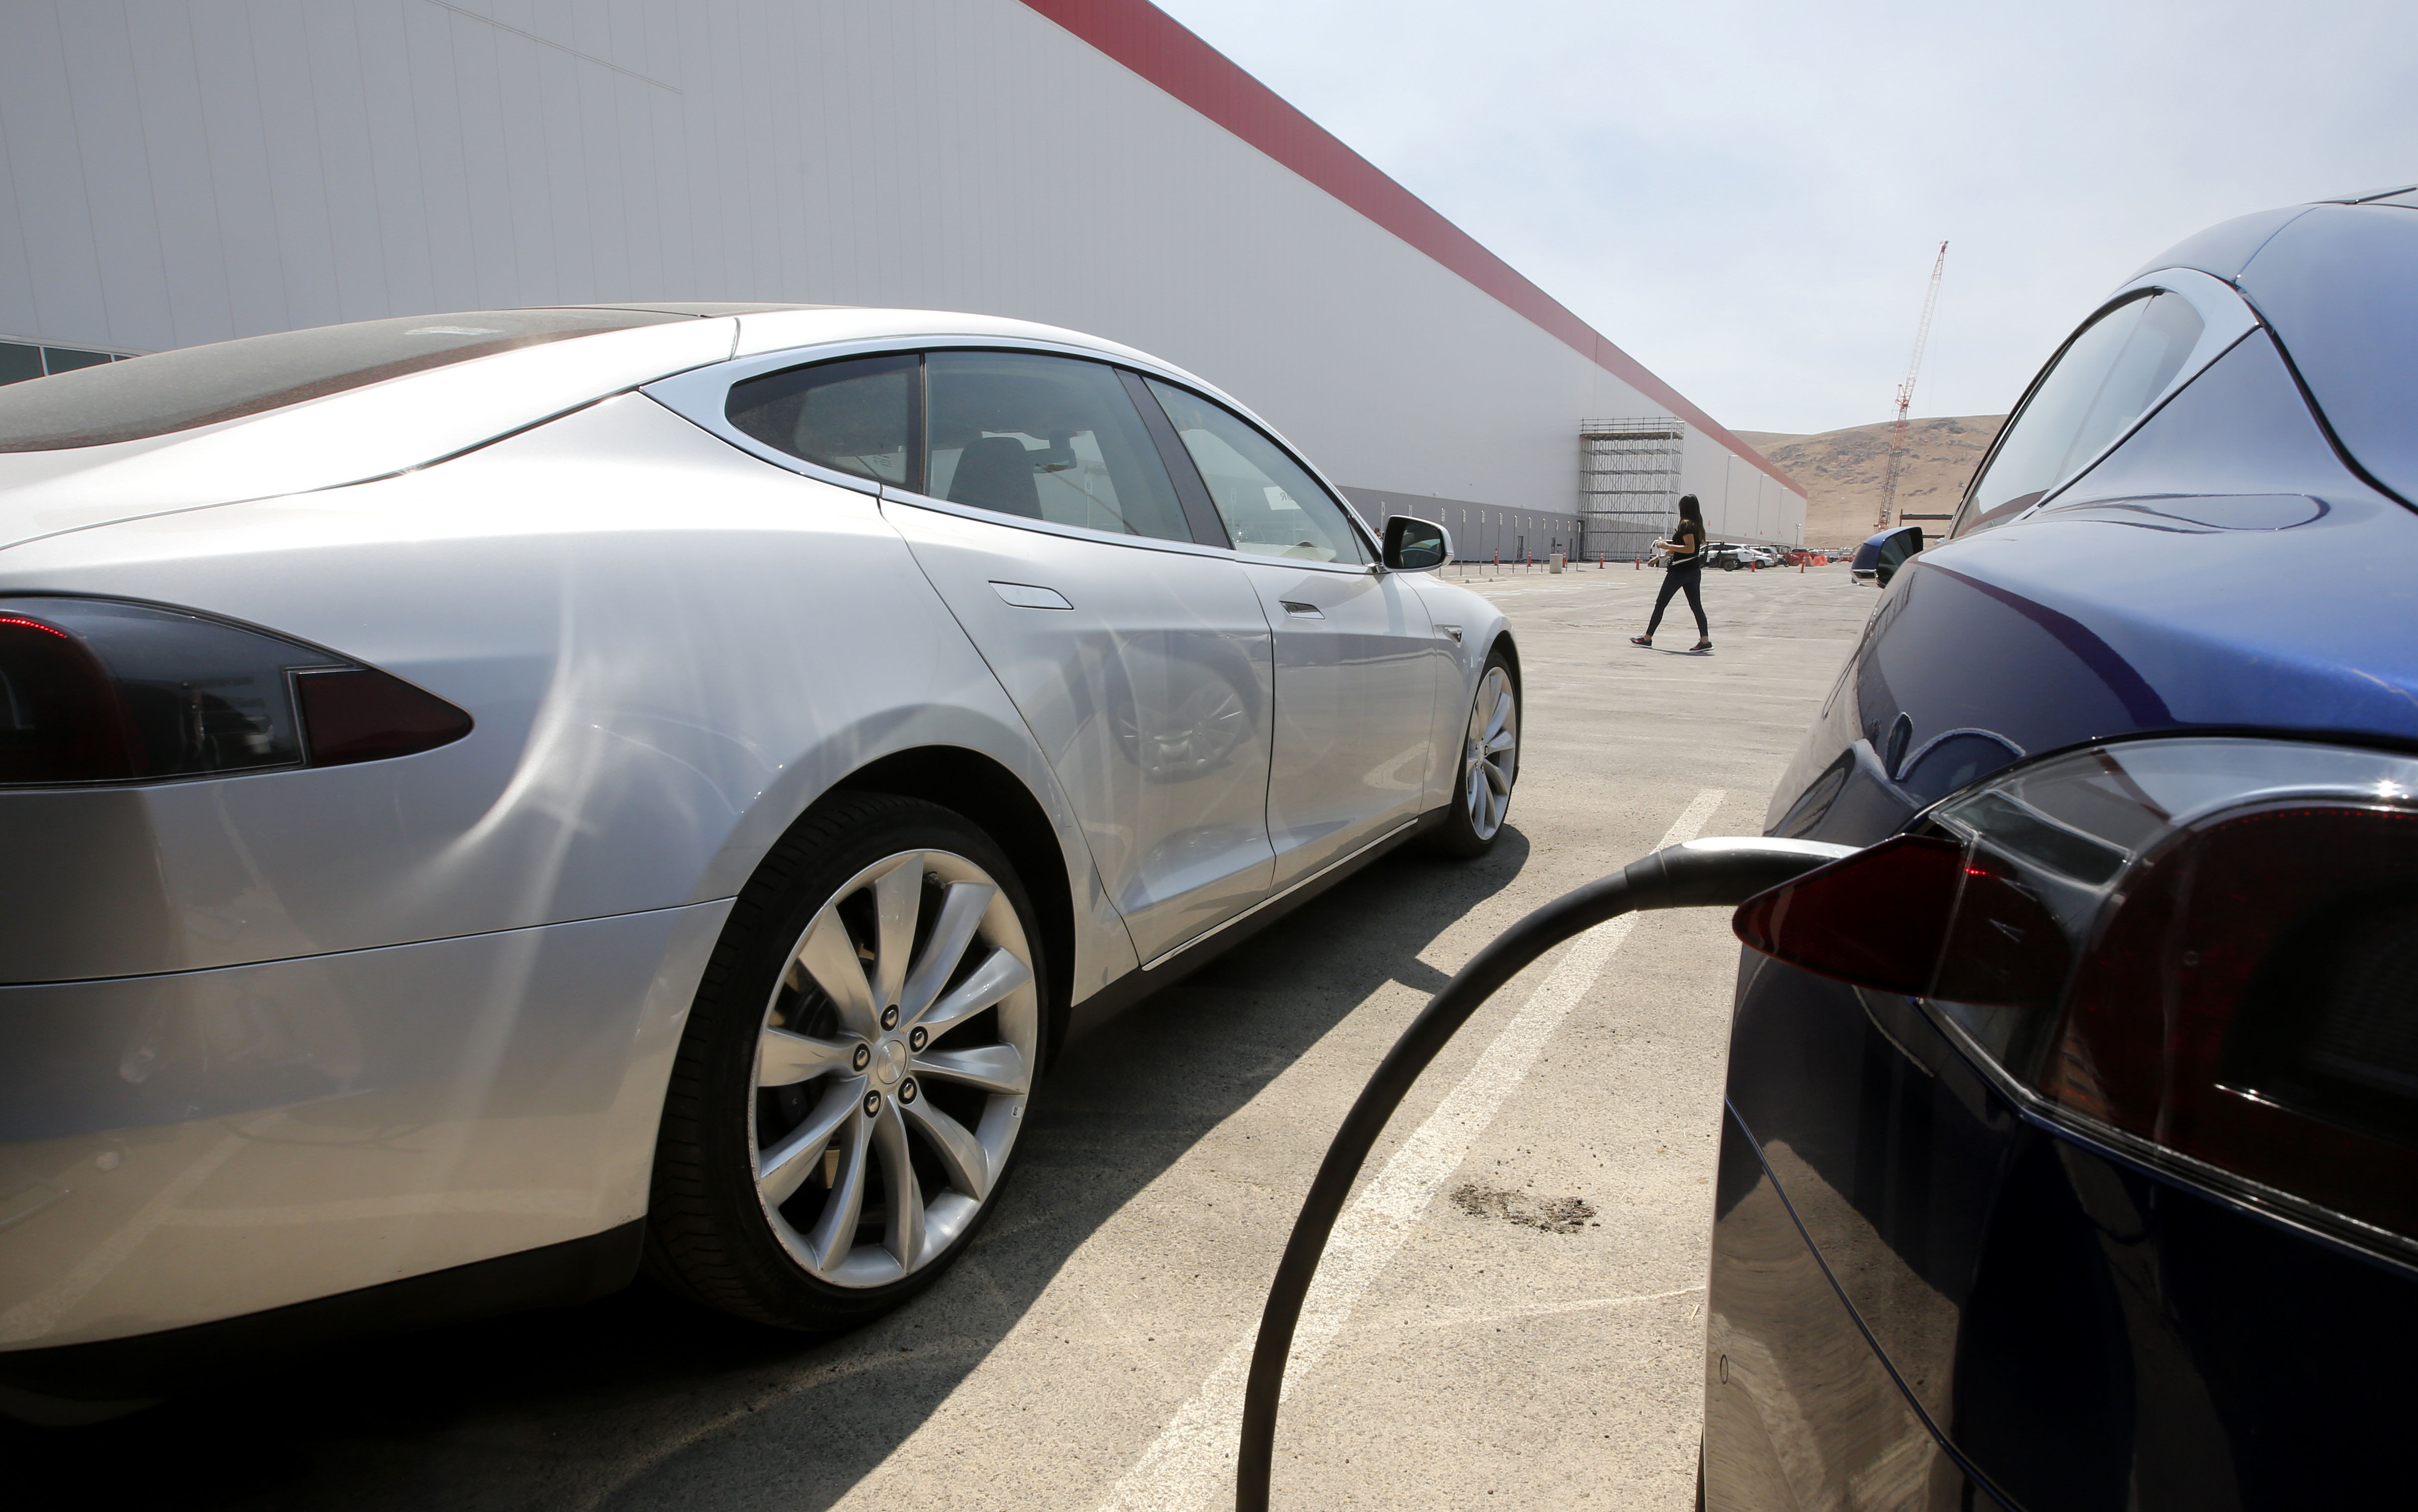 Tesla Motors model S cars are charged at the new Tesla Gigafactory, in Sparks, Nevada, on Tuesday, July 26, 2016. Photo: AP